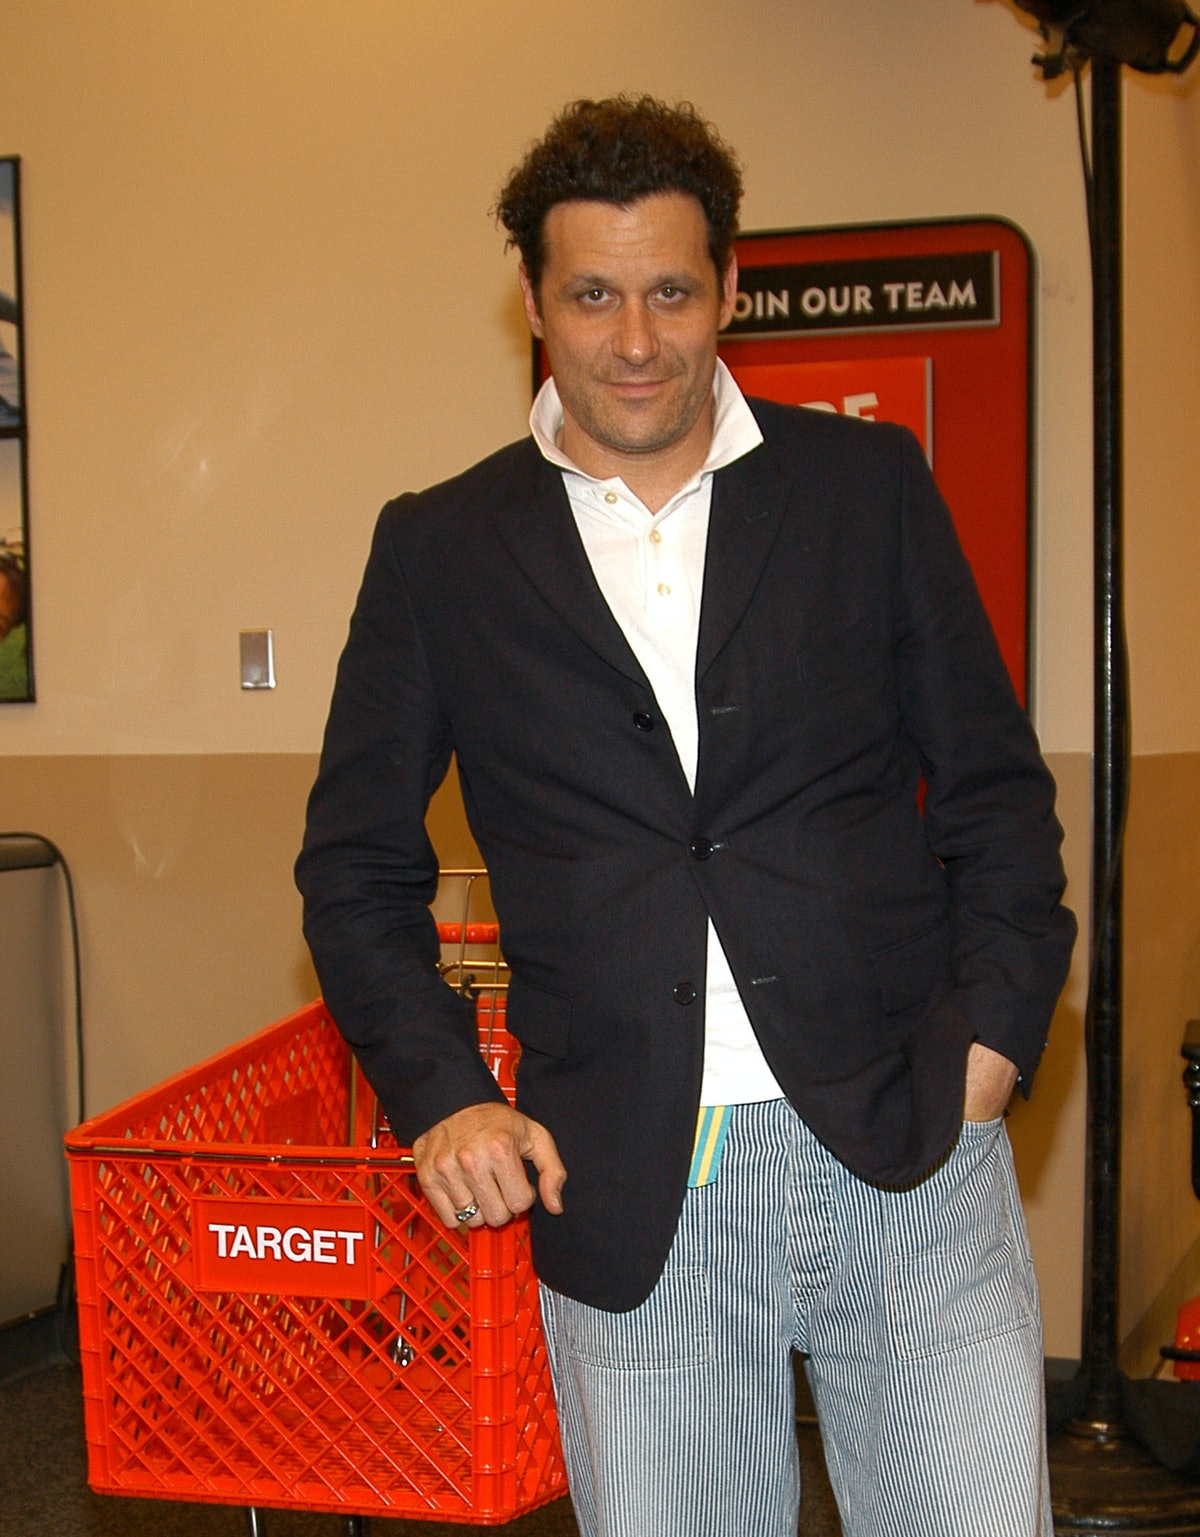 Grand Opening of Target Store on Flatbush Avenue in Brooklyn